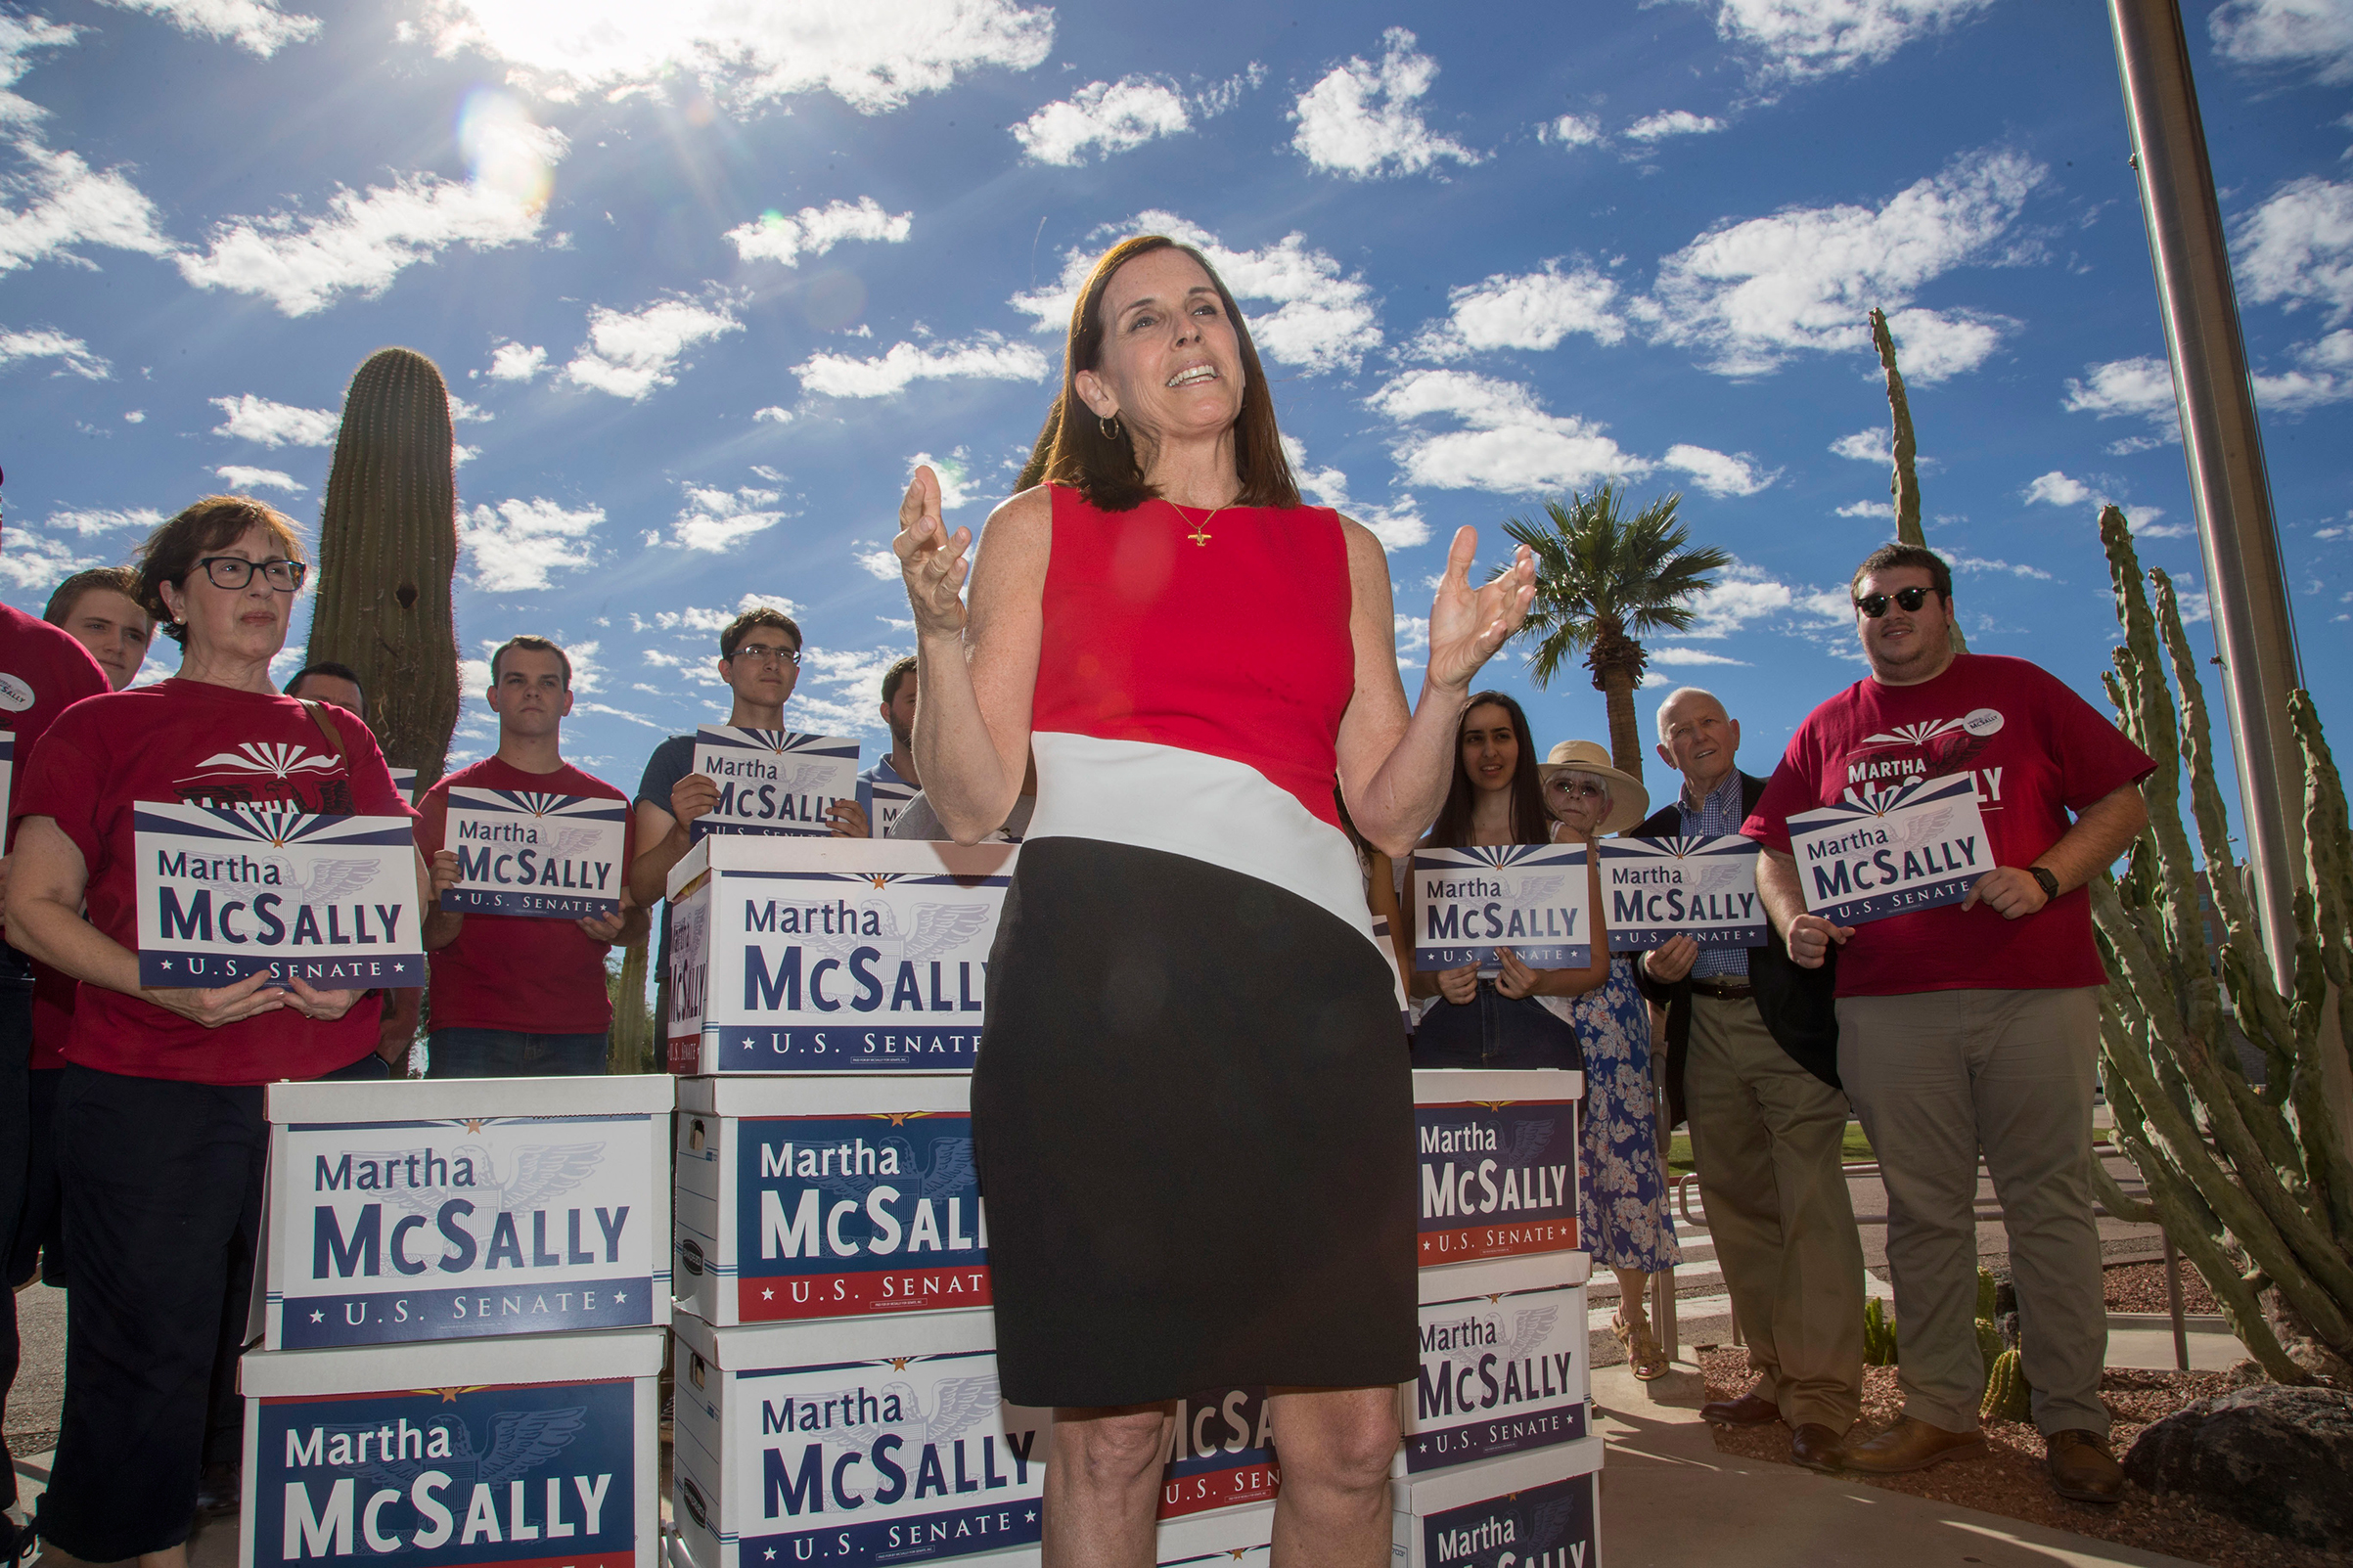 Once a critic, McSally has embraced Trumpin pursuit of his base